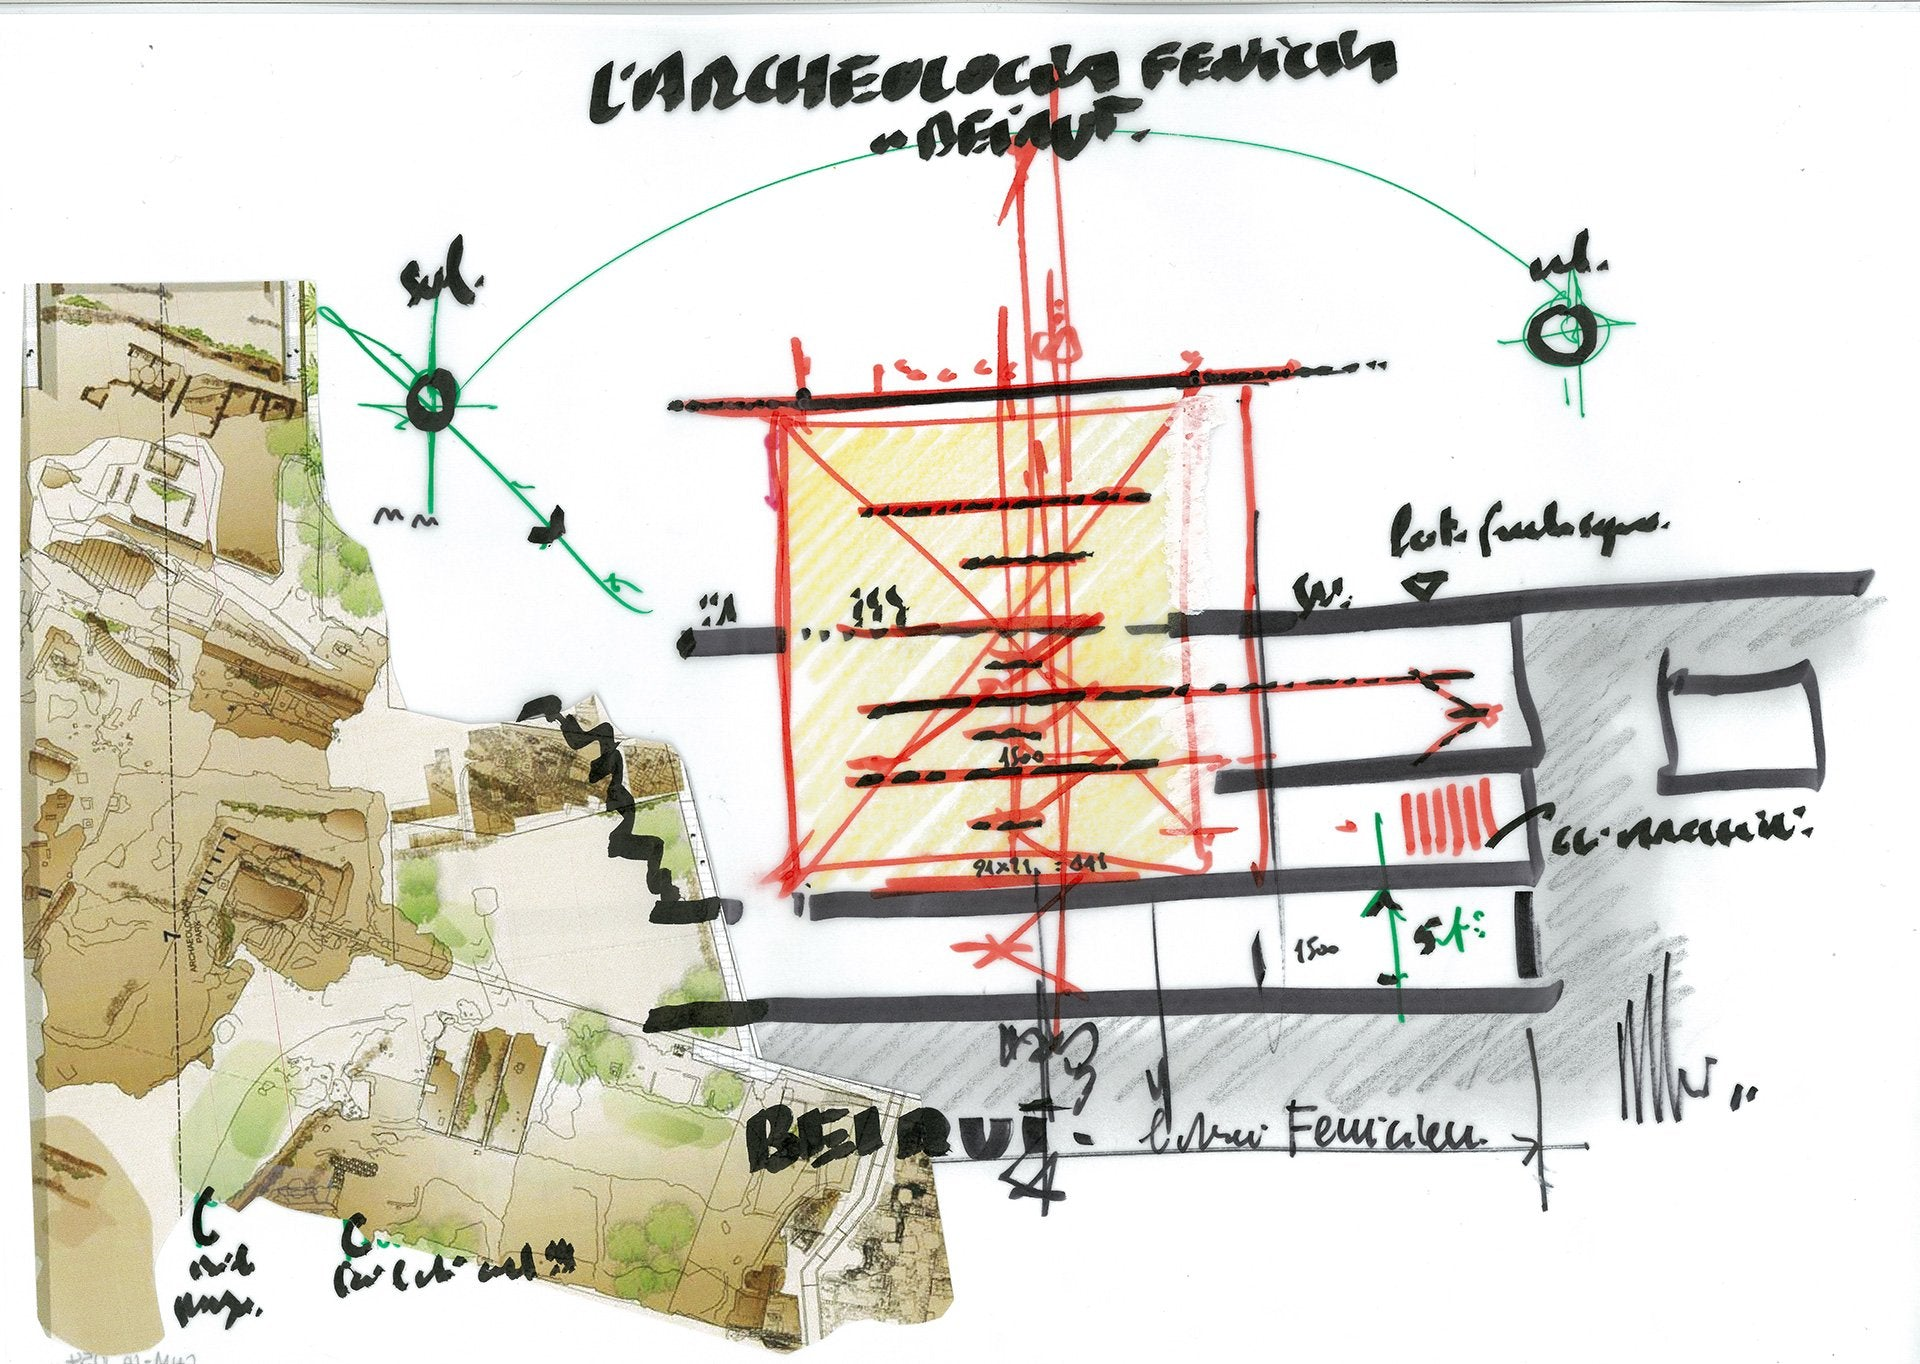 L'Archeologia Fenicia a Beirut Sketch & Collage by Renzo Piano. Photo © Renzo Piano Building Workshop